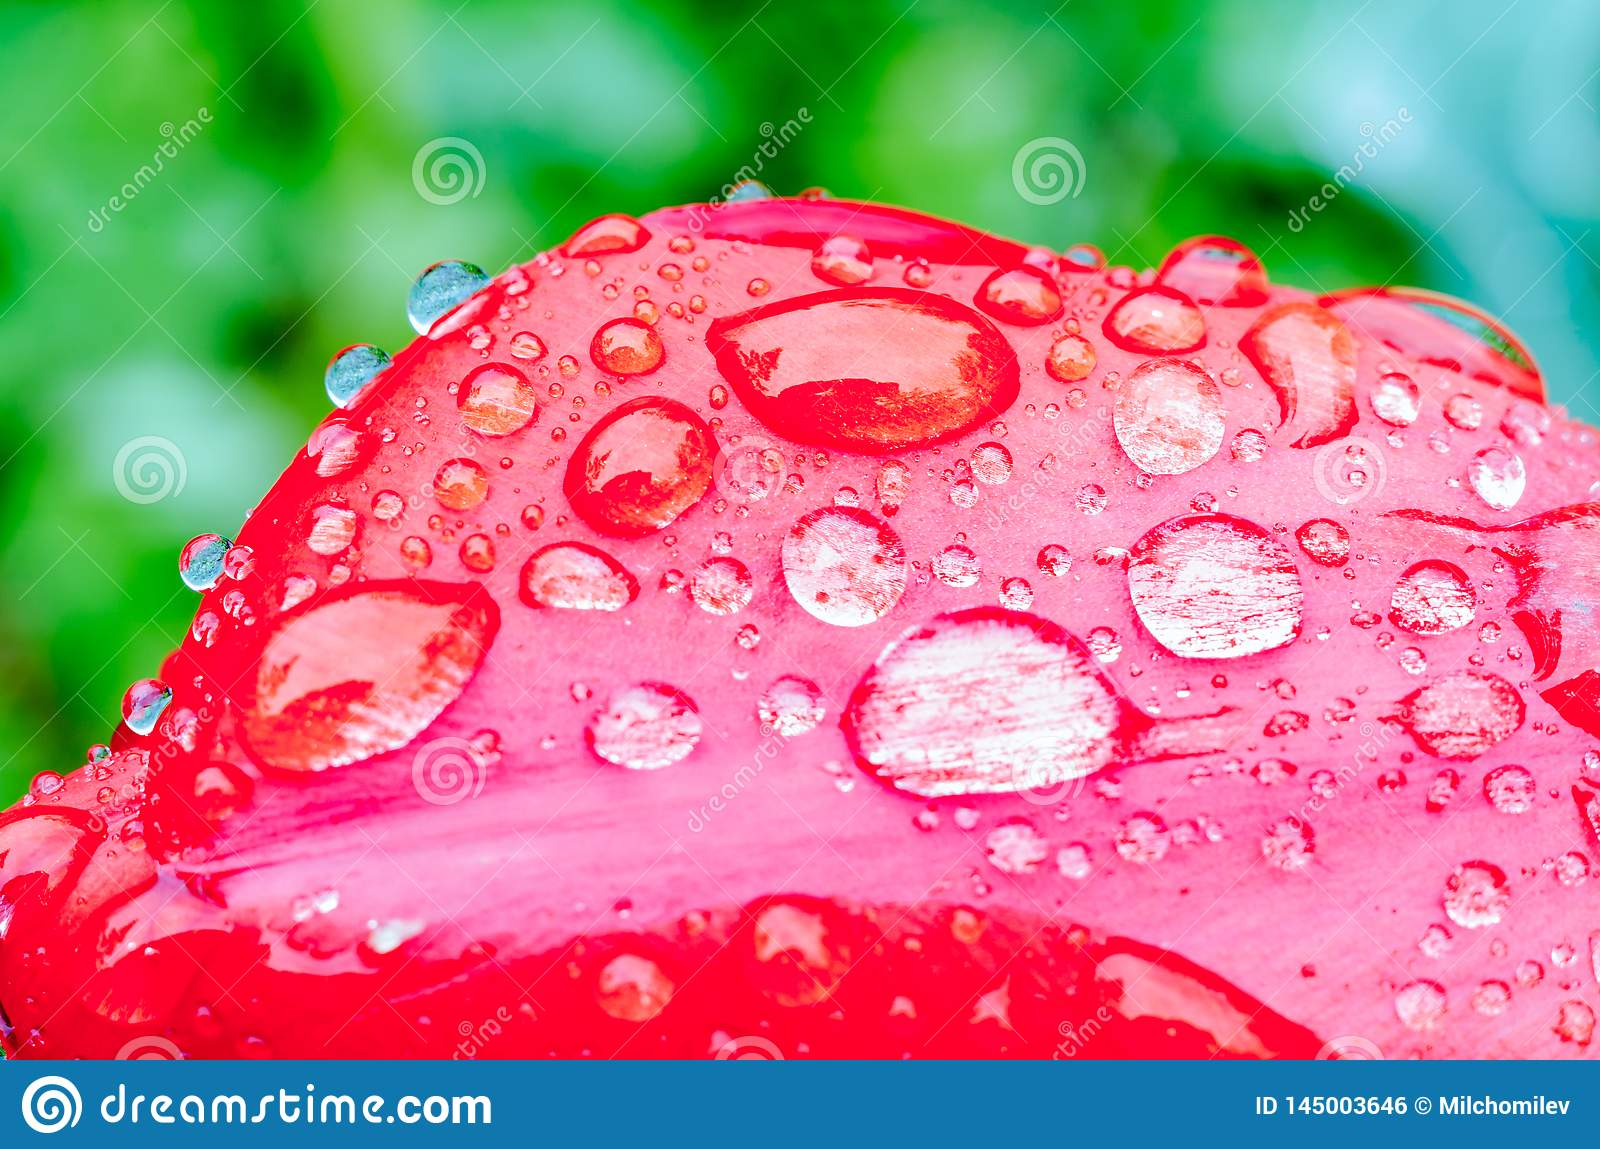 Drops of spring rain on red tulips